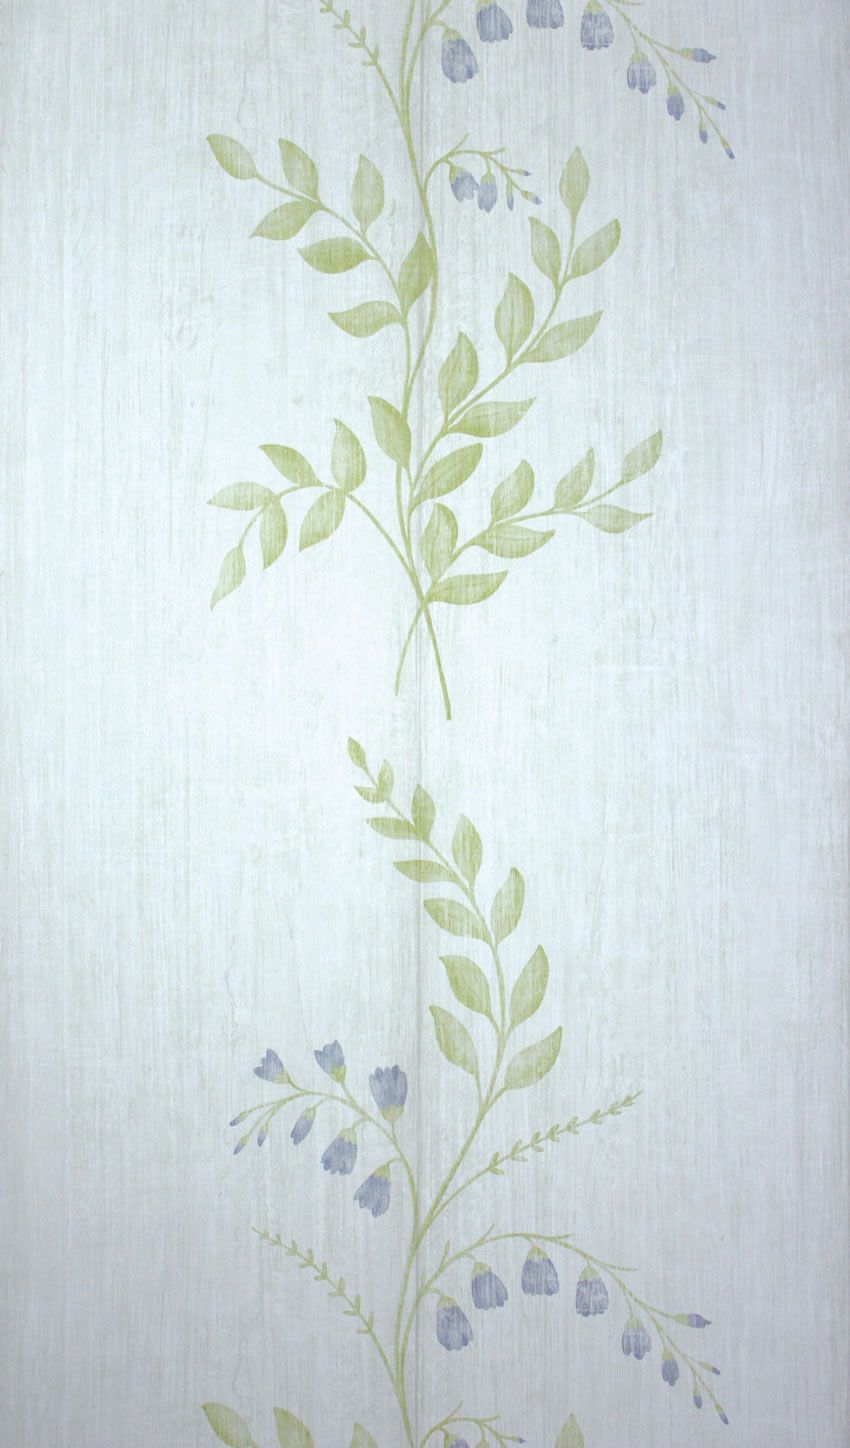 Sample Aubourn Wallpaper in Green from the Woodsford Collection by Nina Campbell